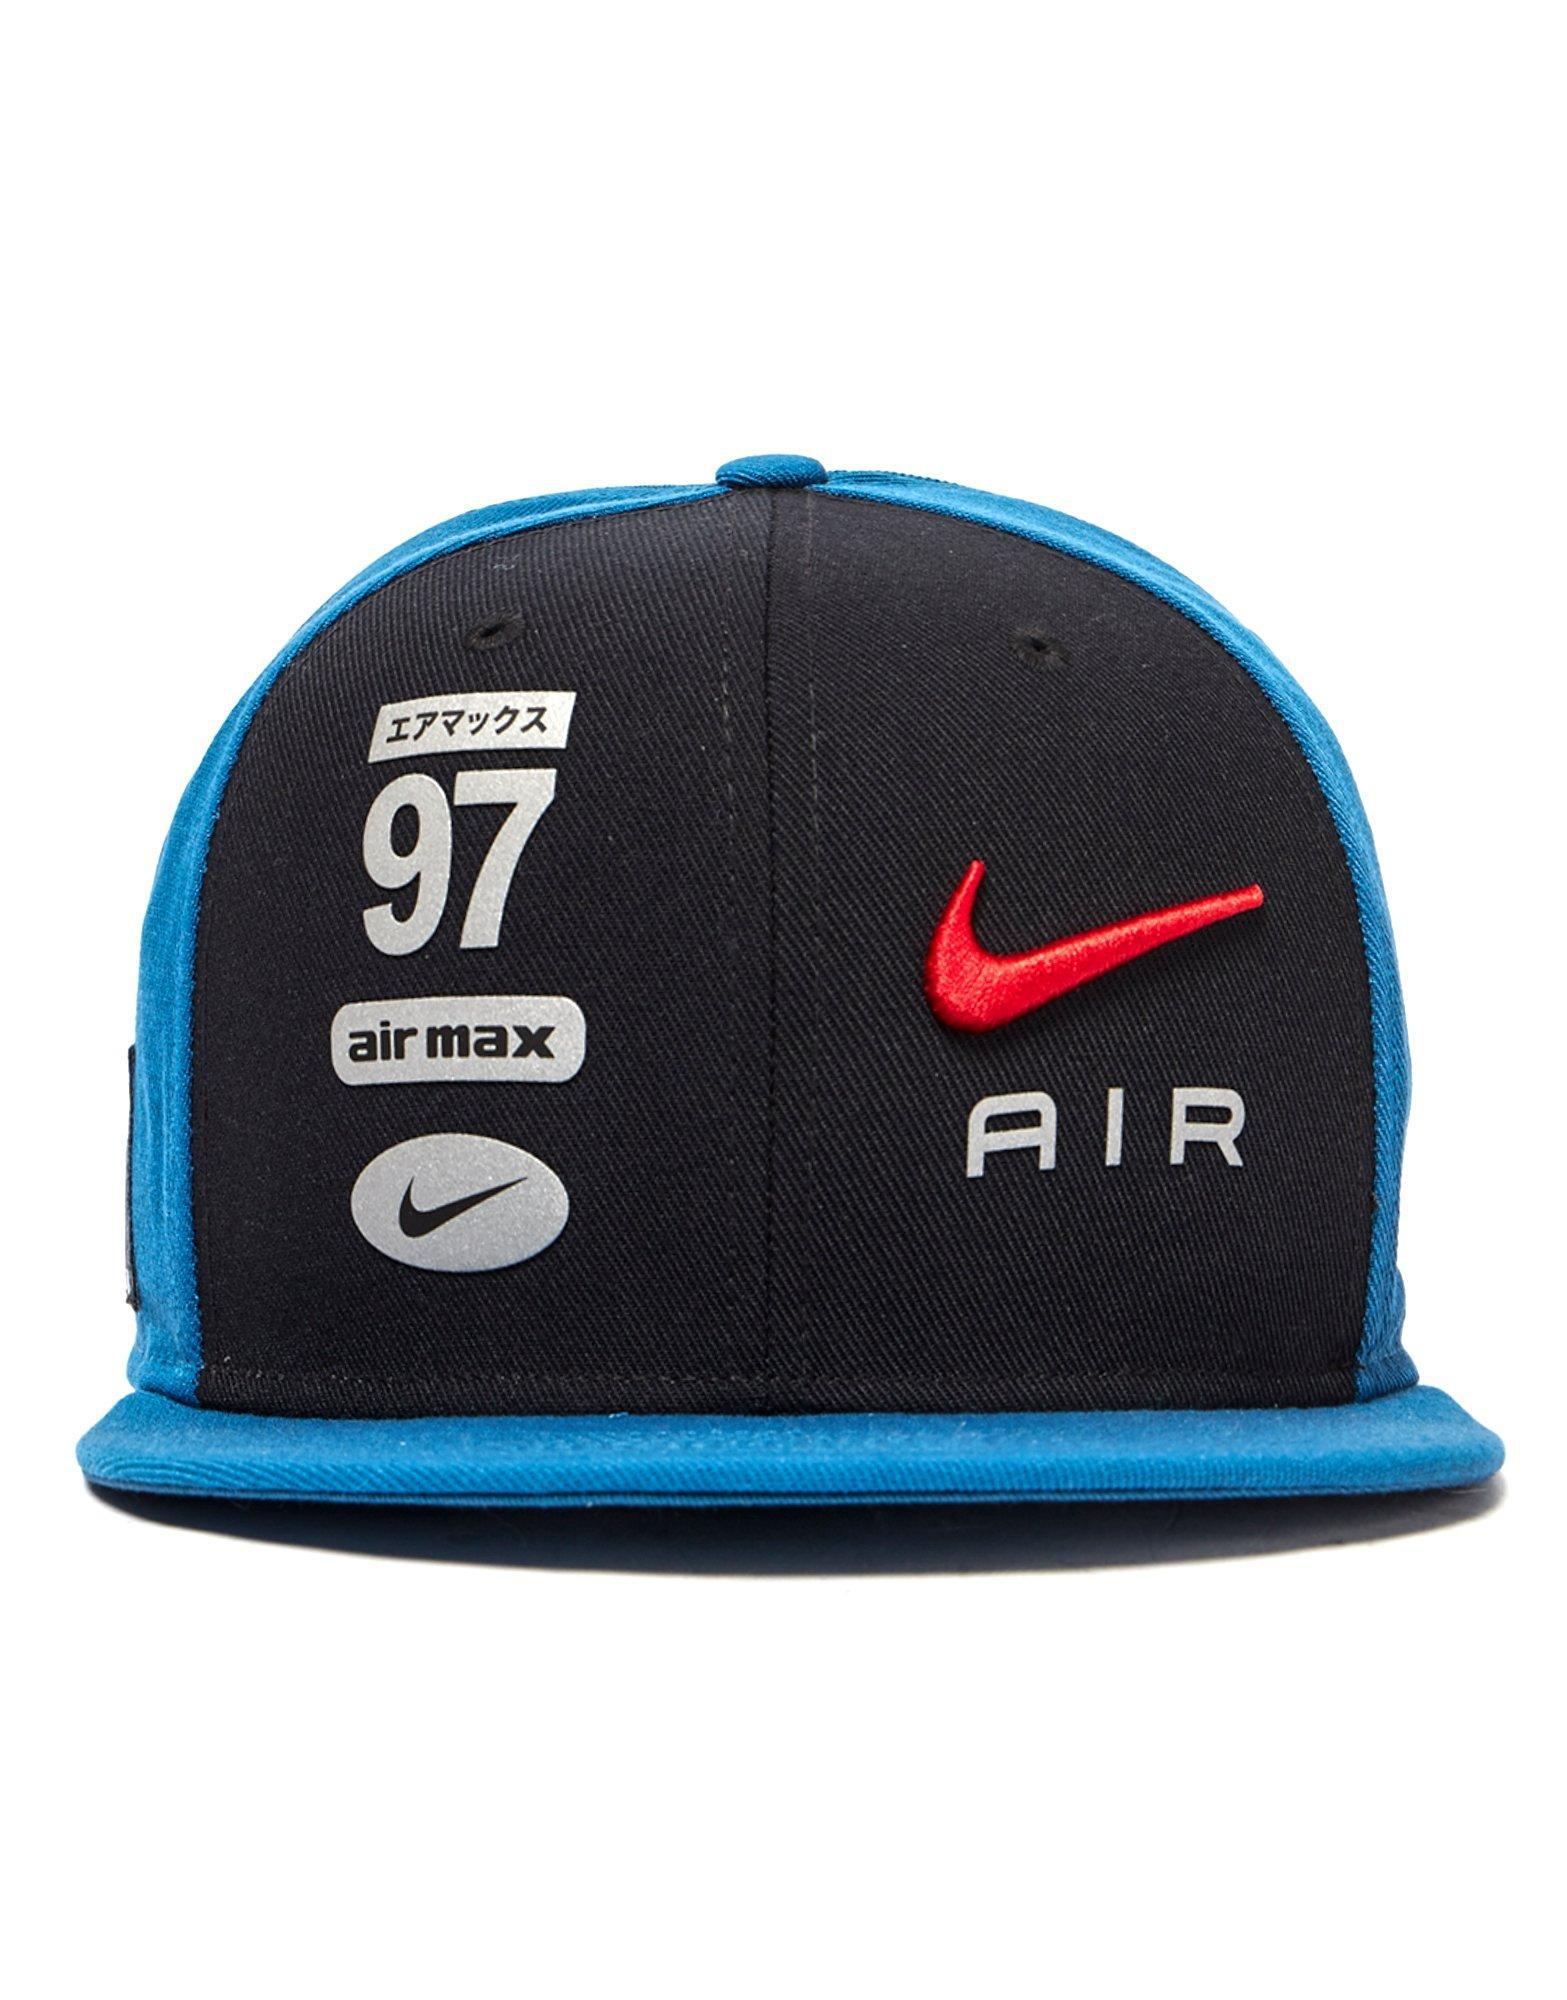 428e6834e81 Nike Air Max Snapback in Blue for Men - Lyst